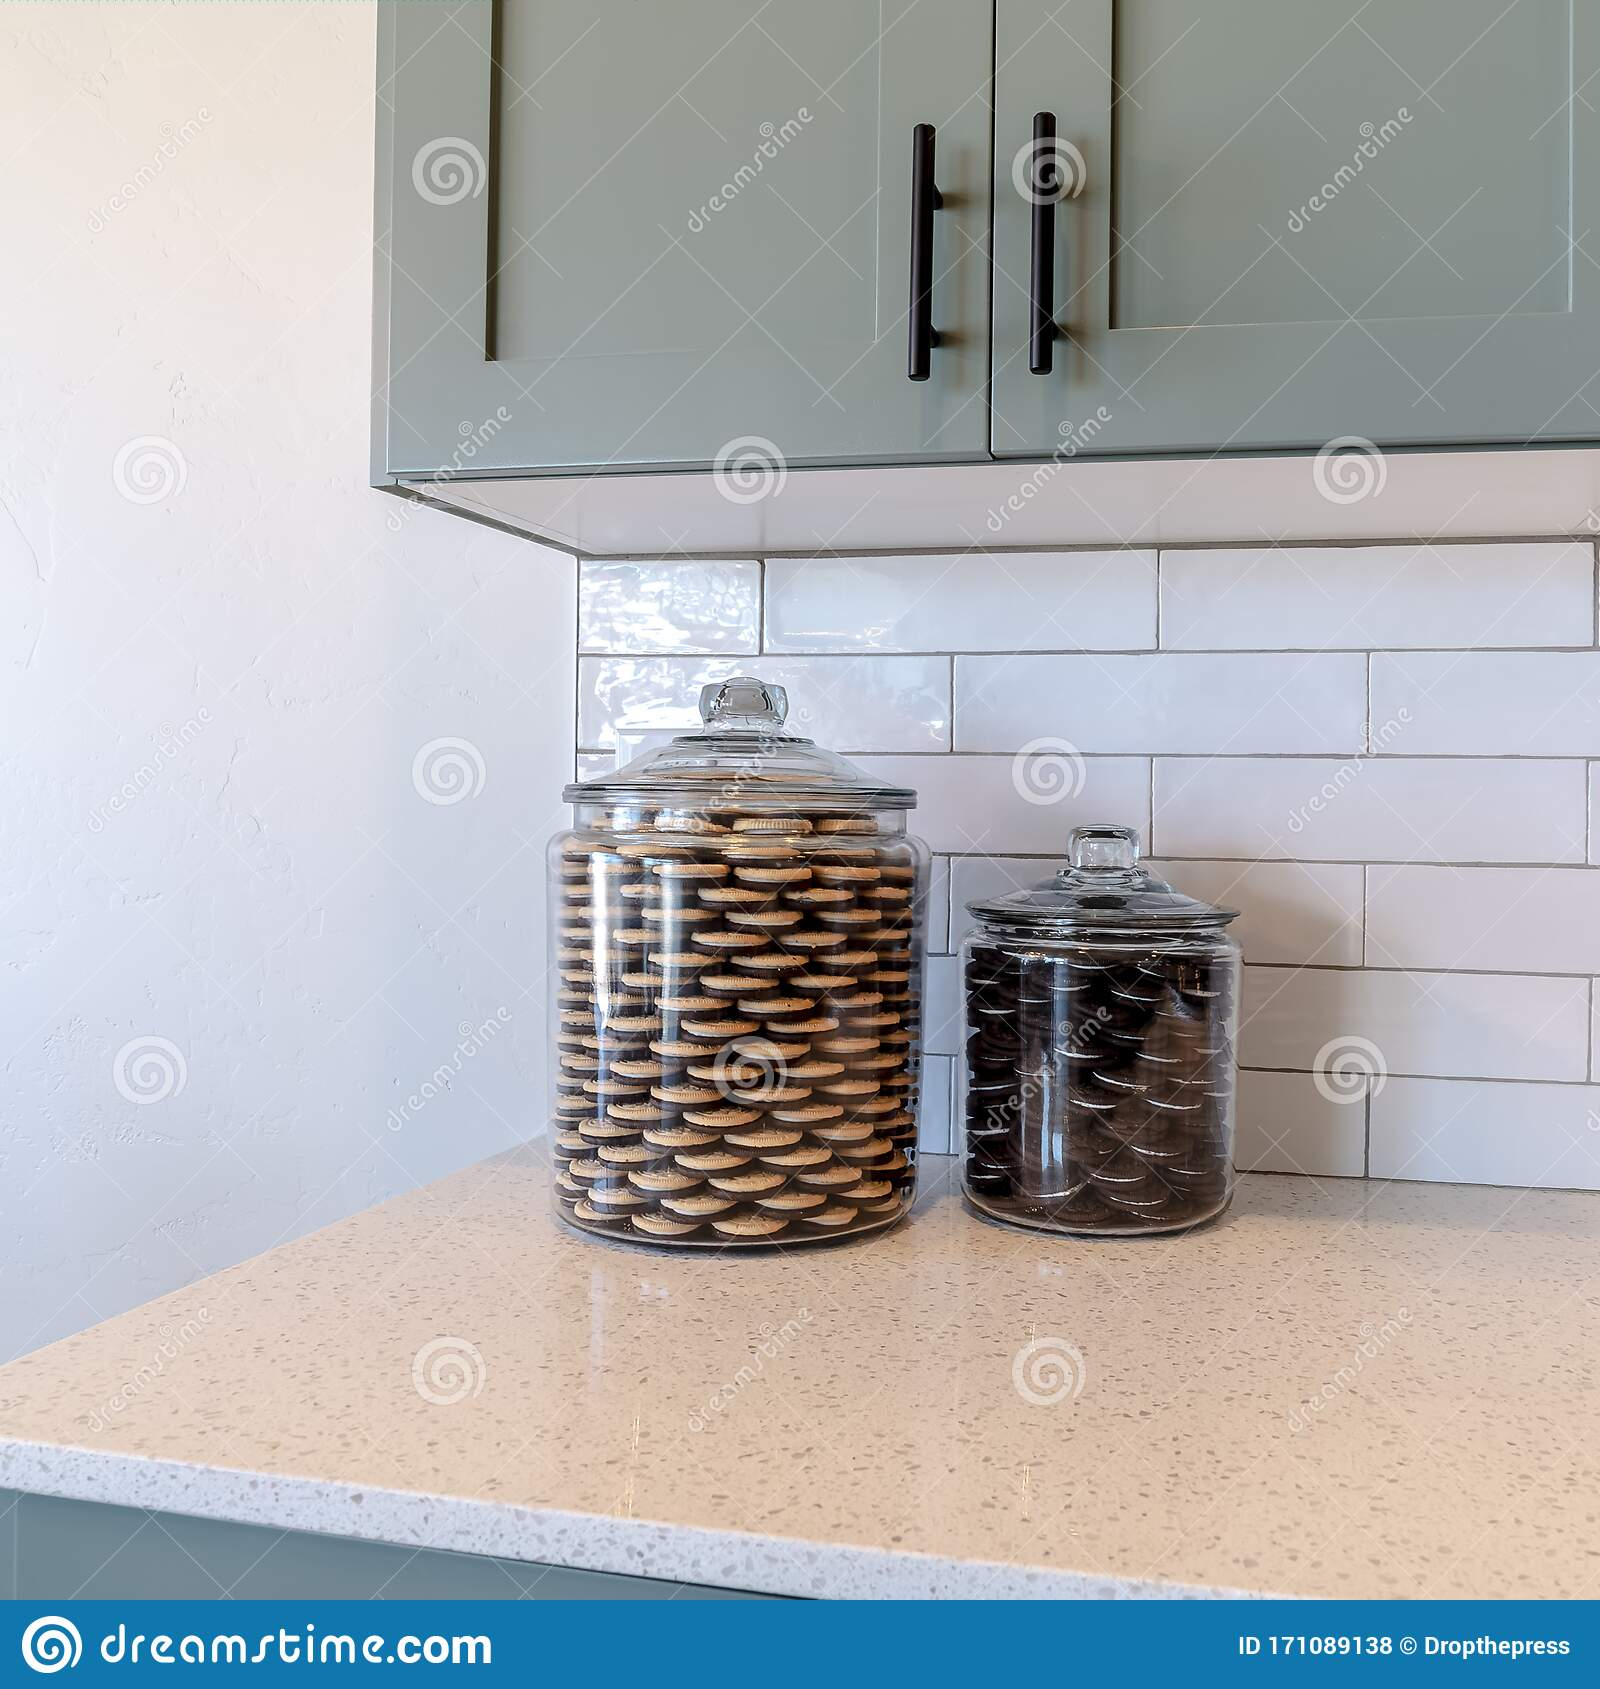 https www dreamstime com square jars cookies kitchen counter top against tile backsplash white wall electrical socket hangiing cabinets image171089138